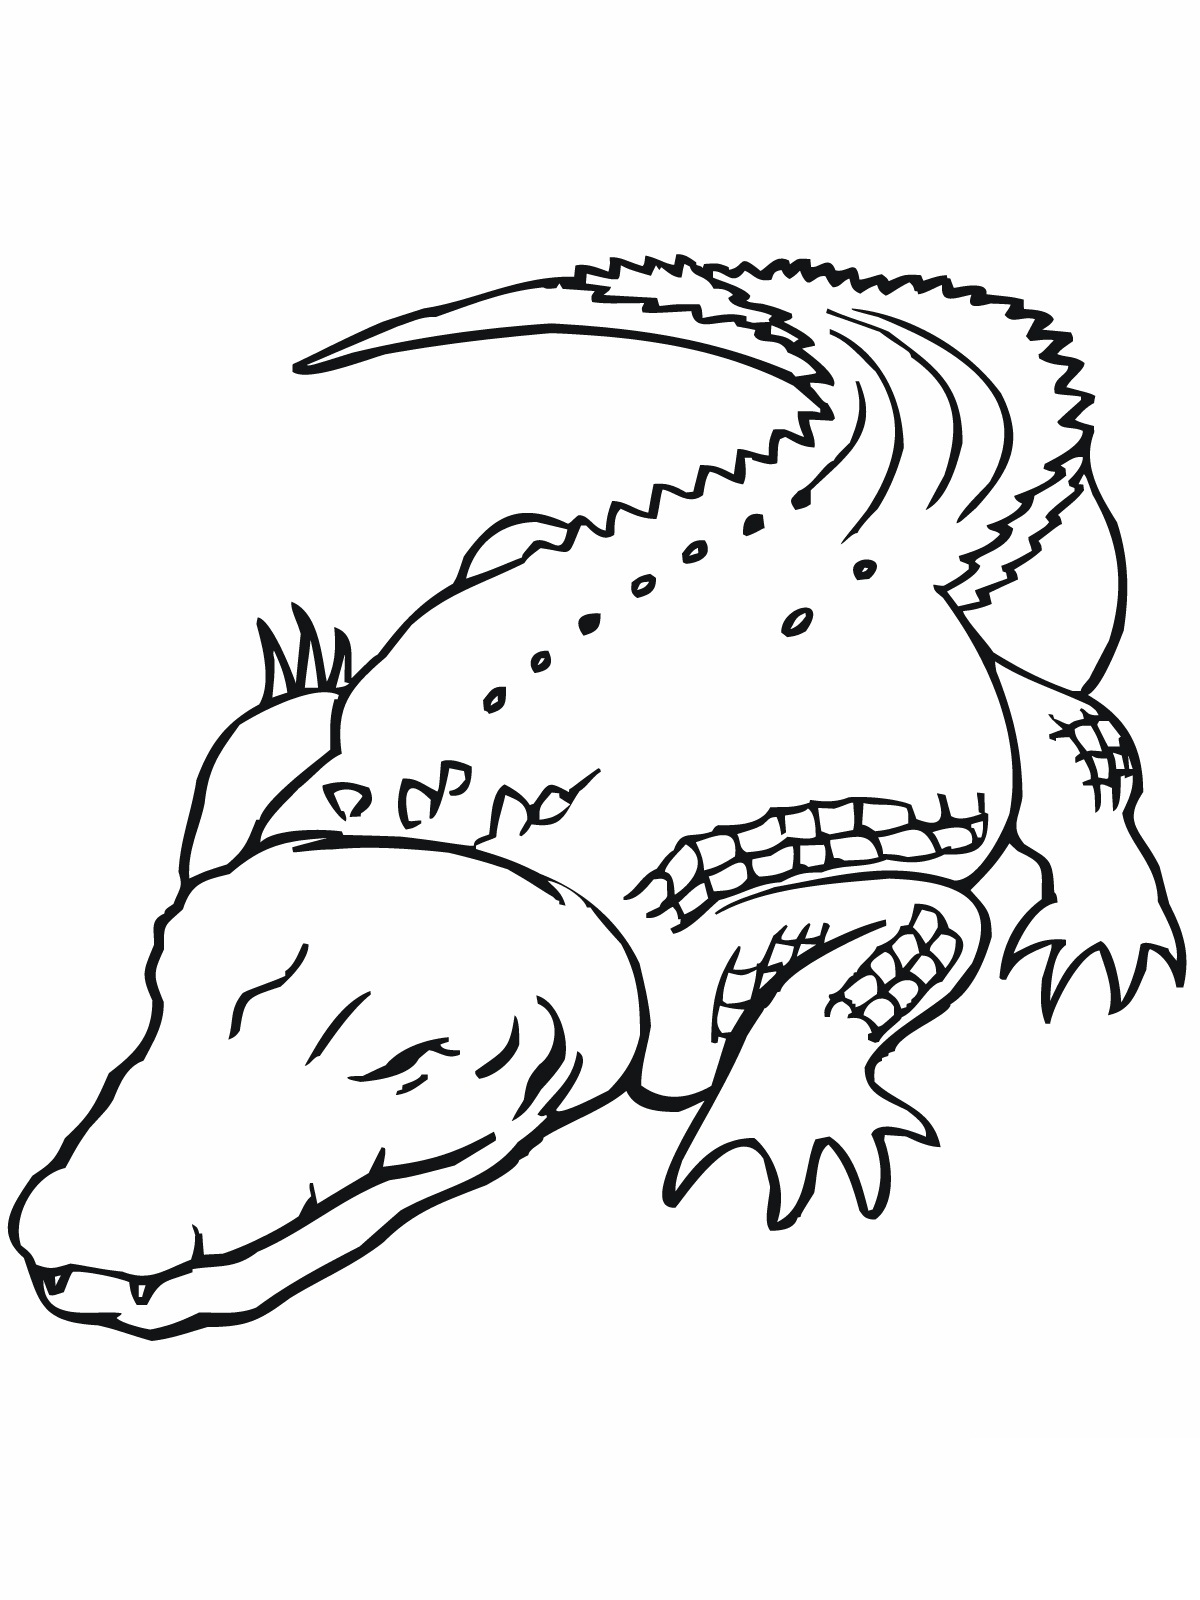 printable coloring pages crocodile - photo#25